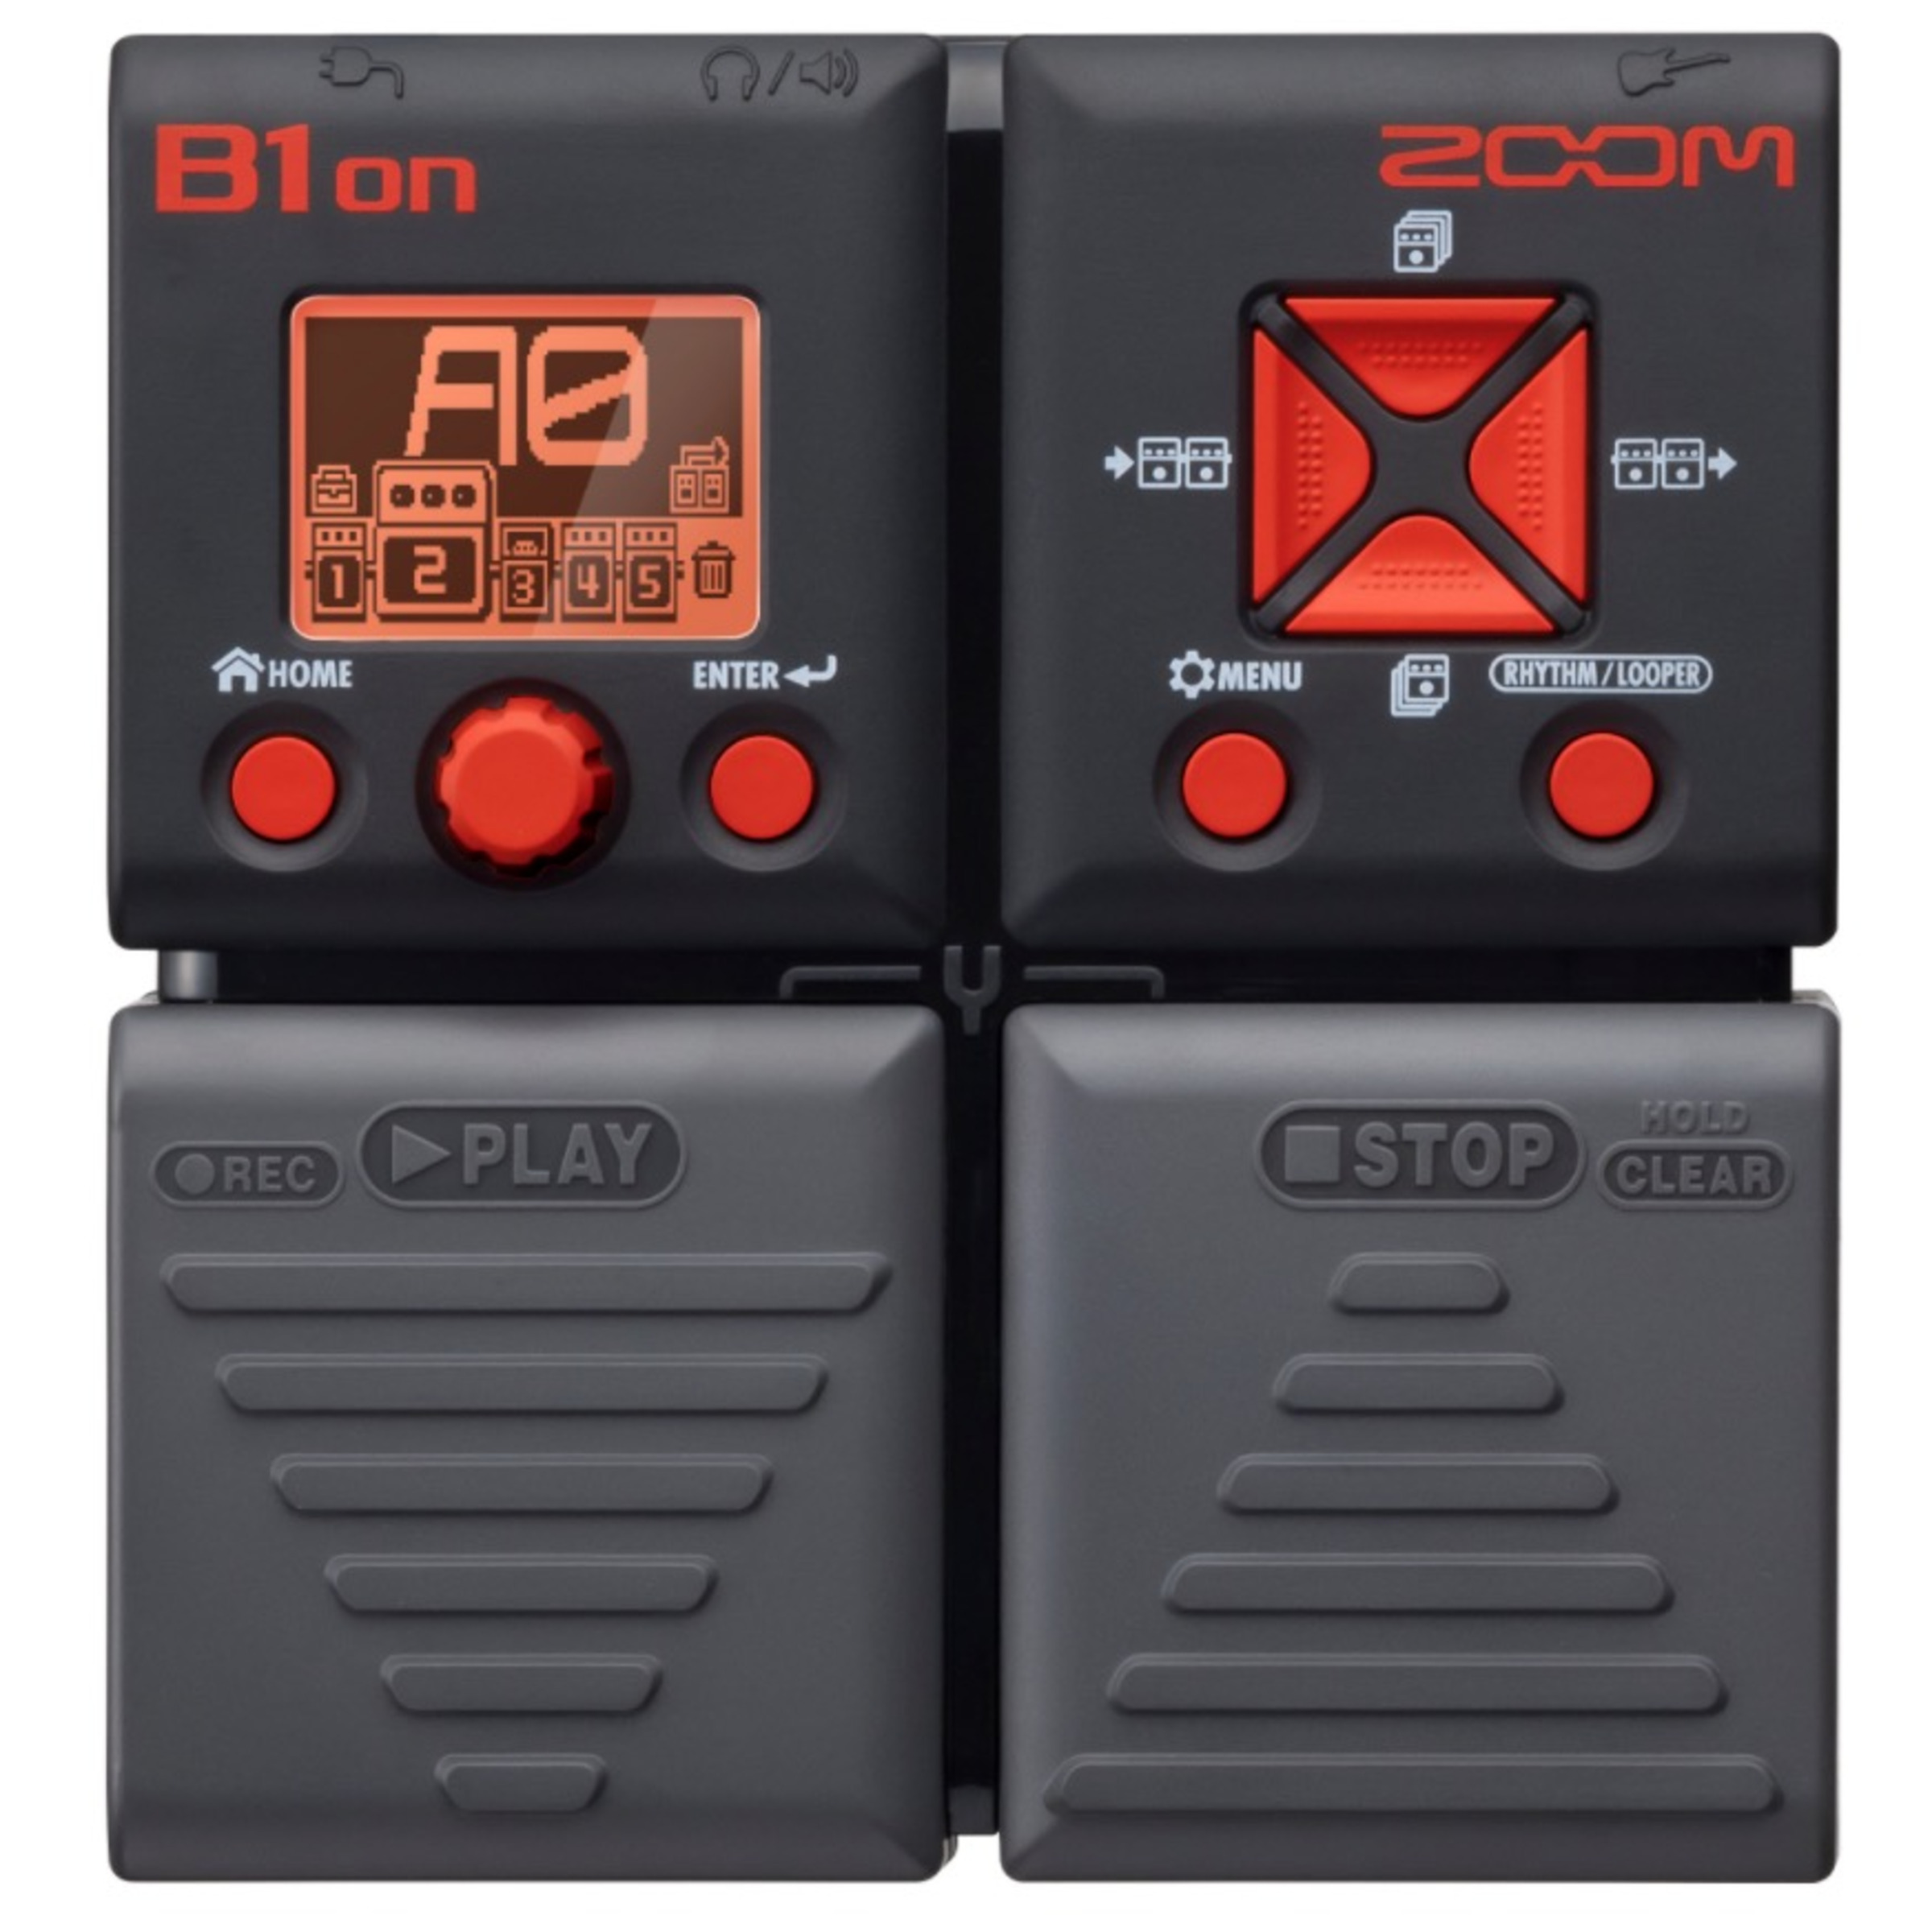 zoom b1on bass guitar multi effects pedal giggear. Black Bedroom Furniture Sets. Home Design Ideas